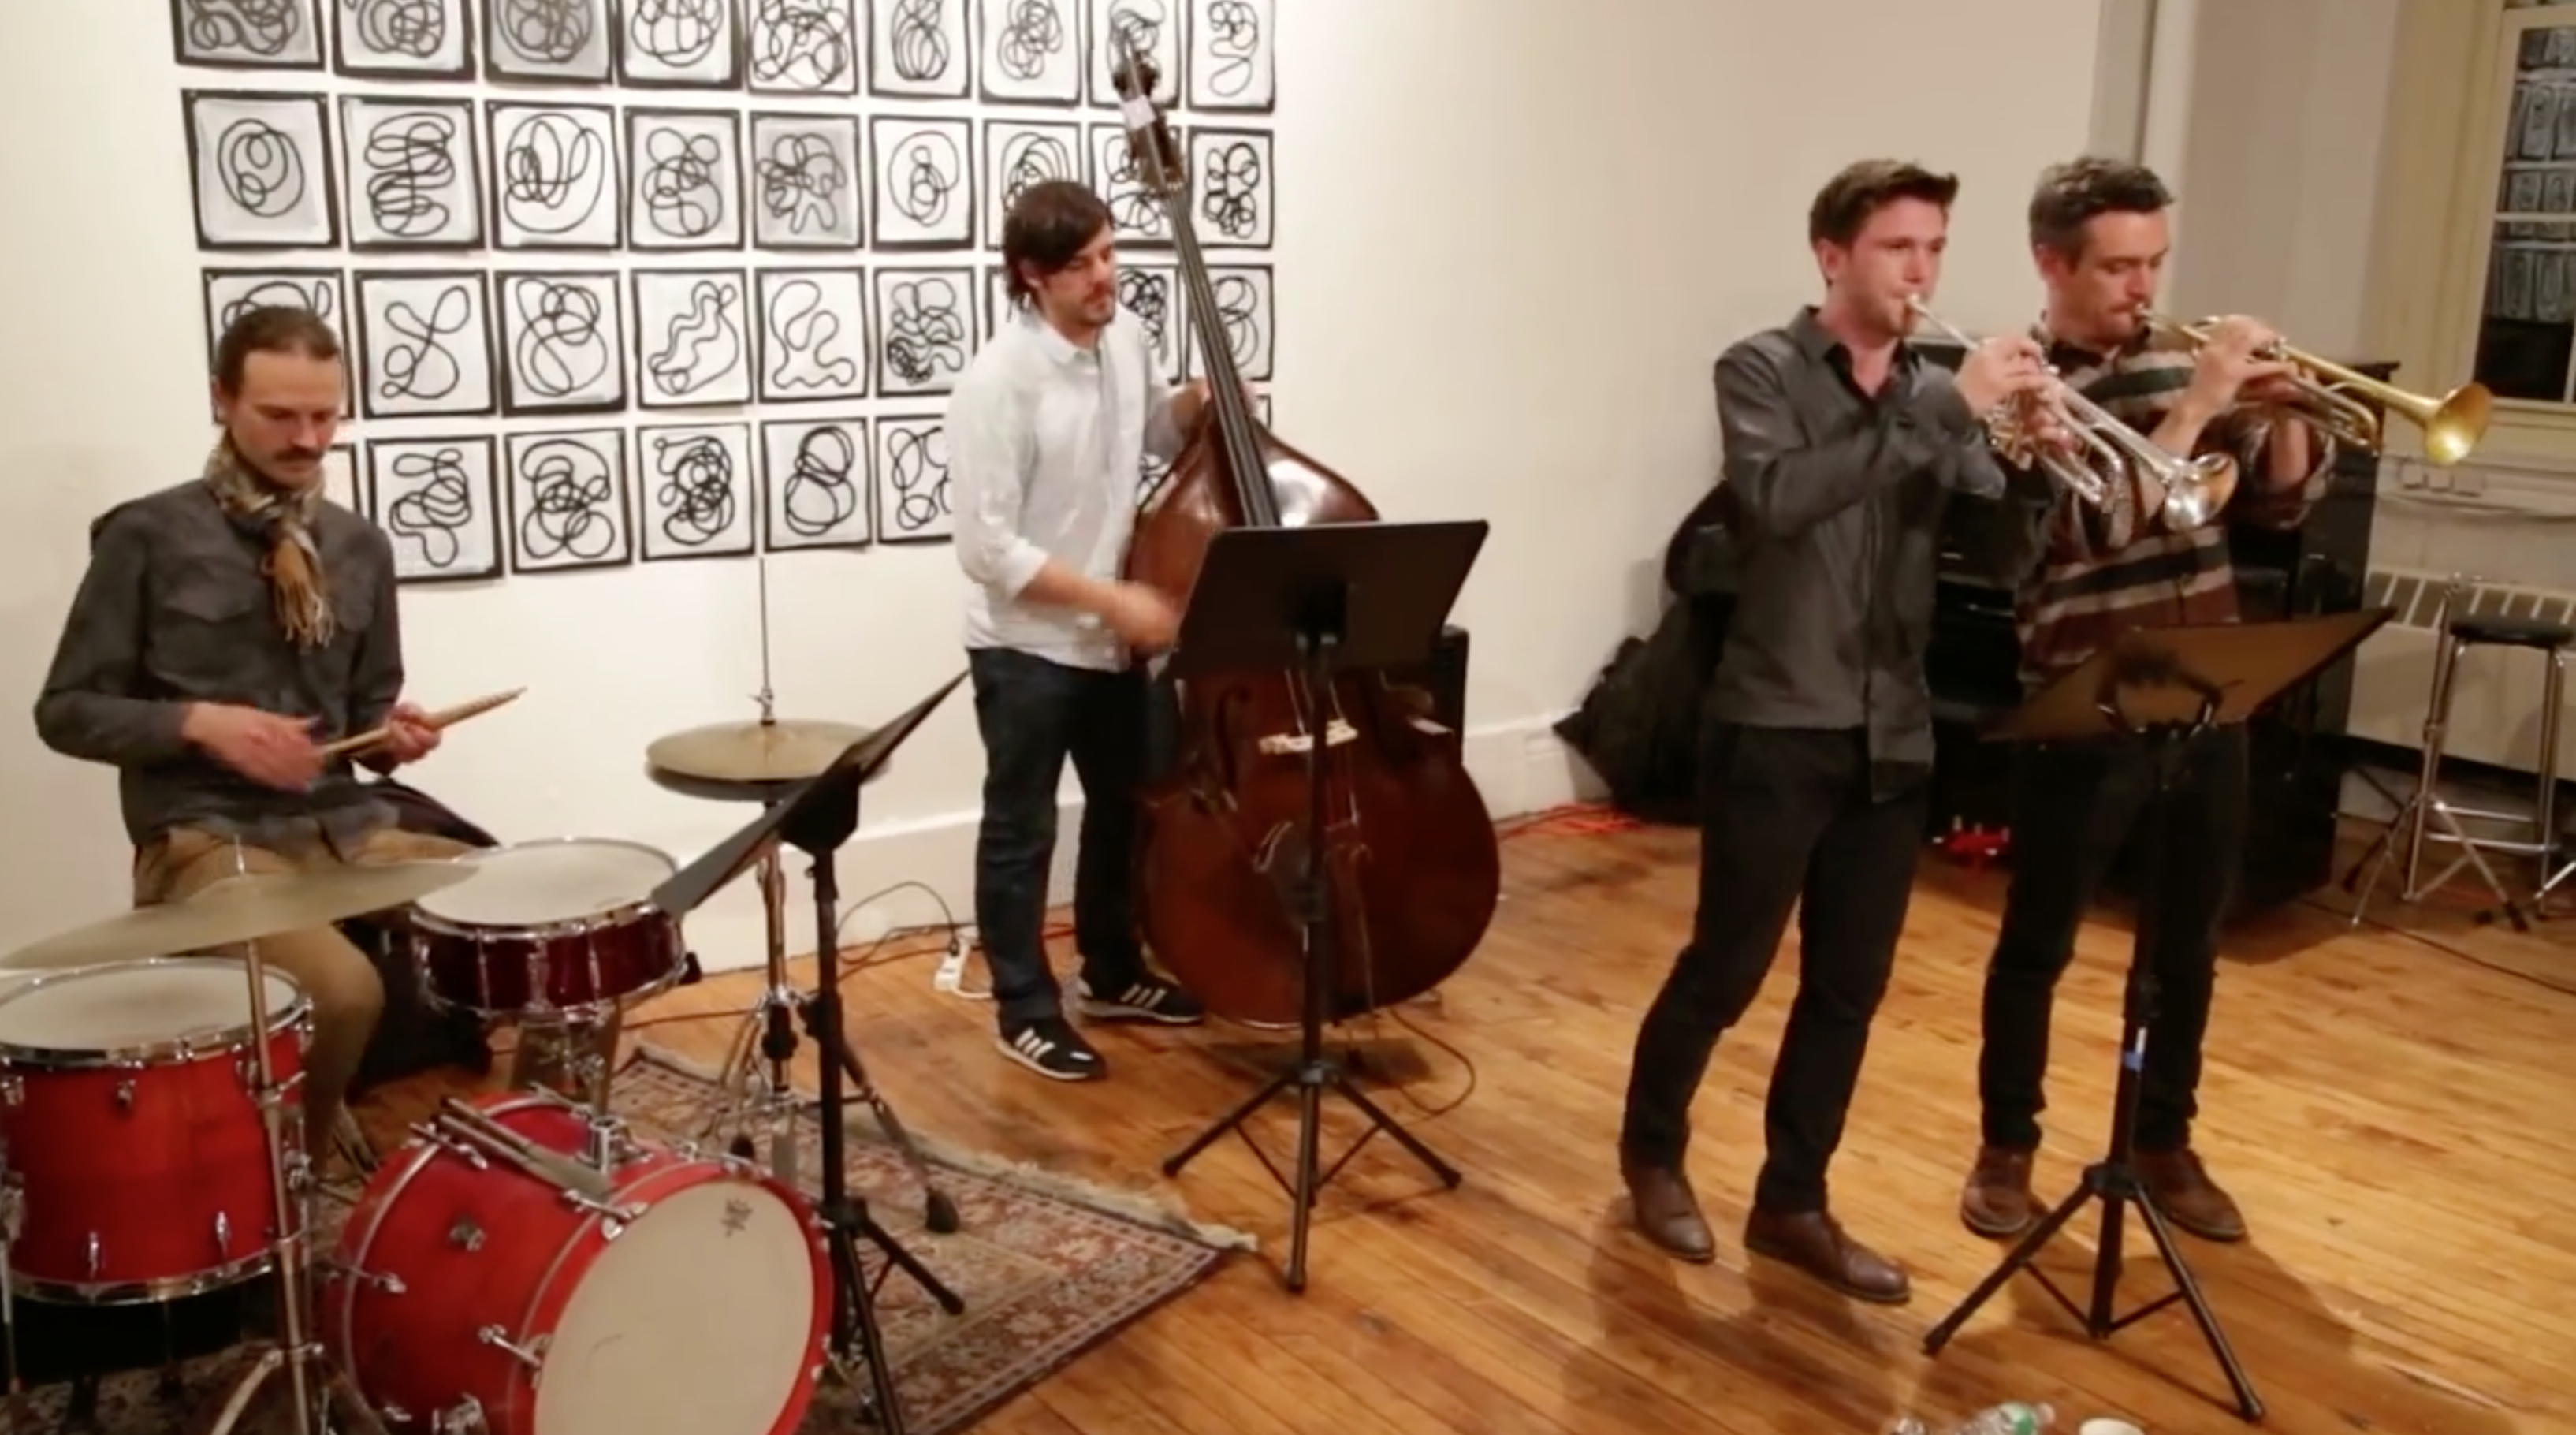 Antlers \ Capillaries @ Arts For Art (NYC Free Jazz Summit) [Mar – 31]